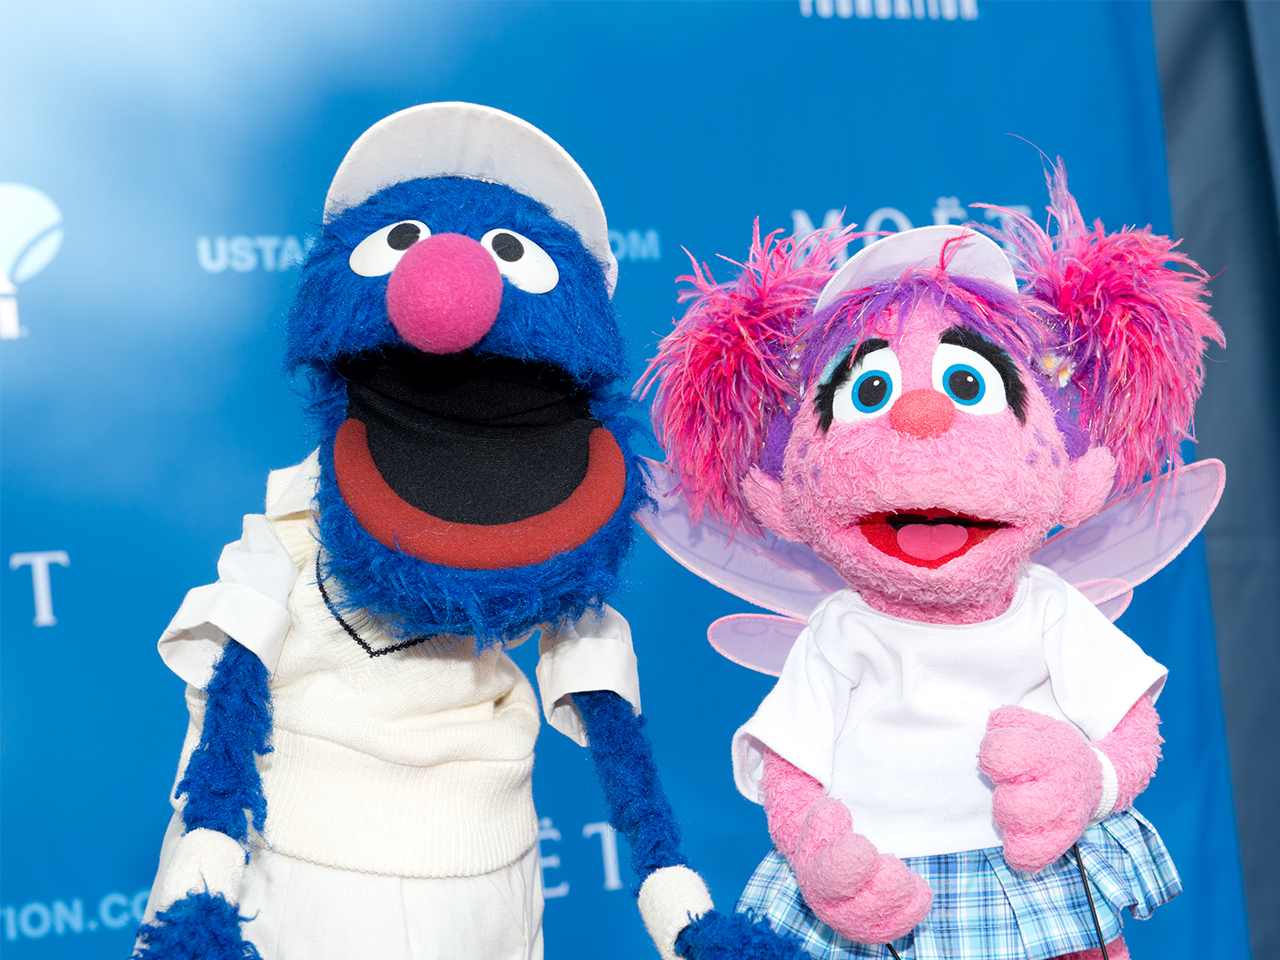 Grover and Abby Cadabby from Sesame Street posing at an event